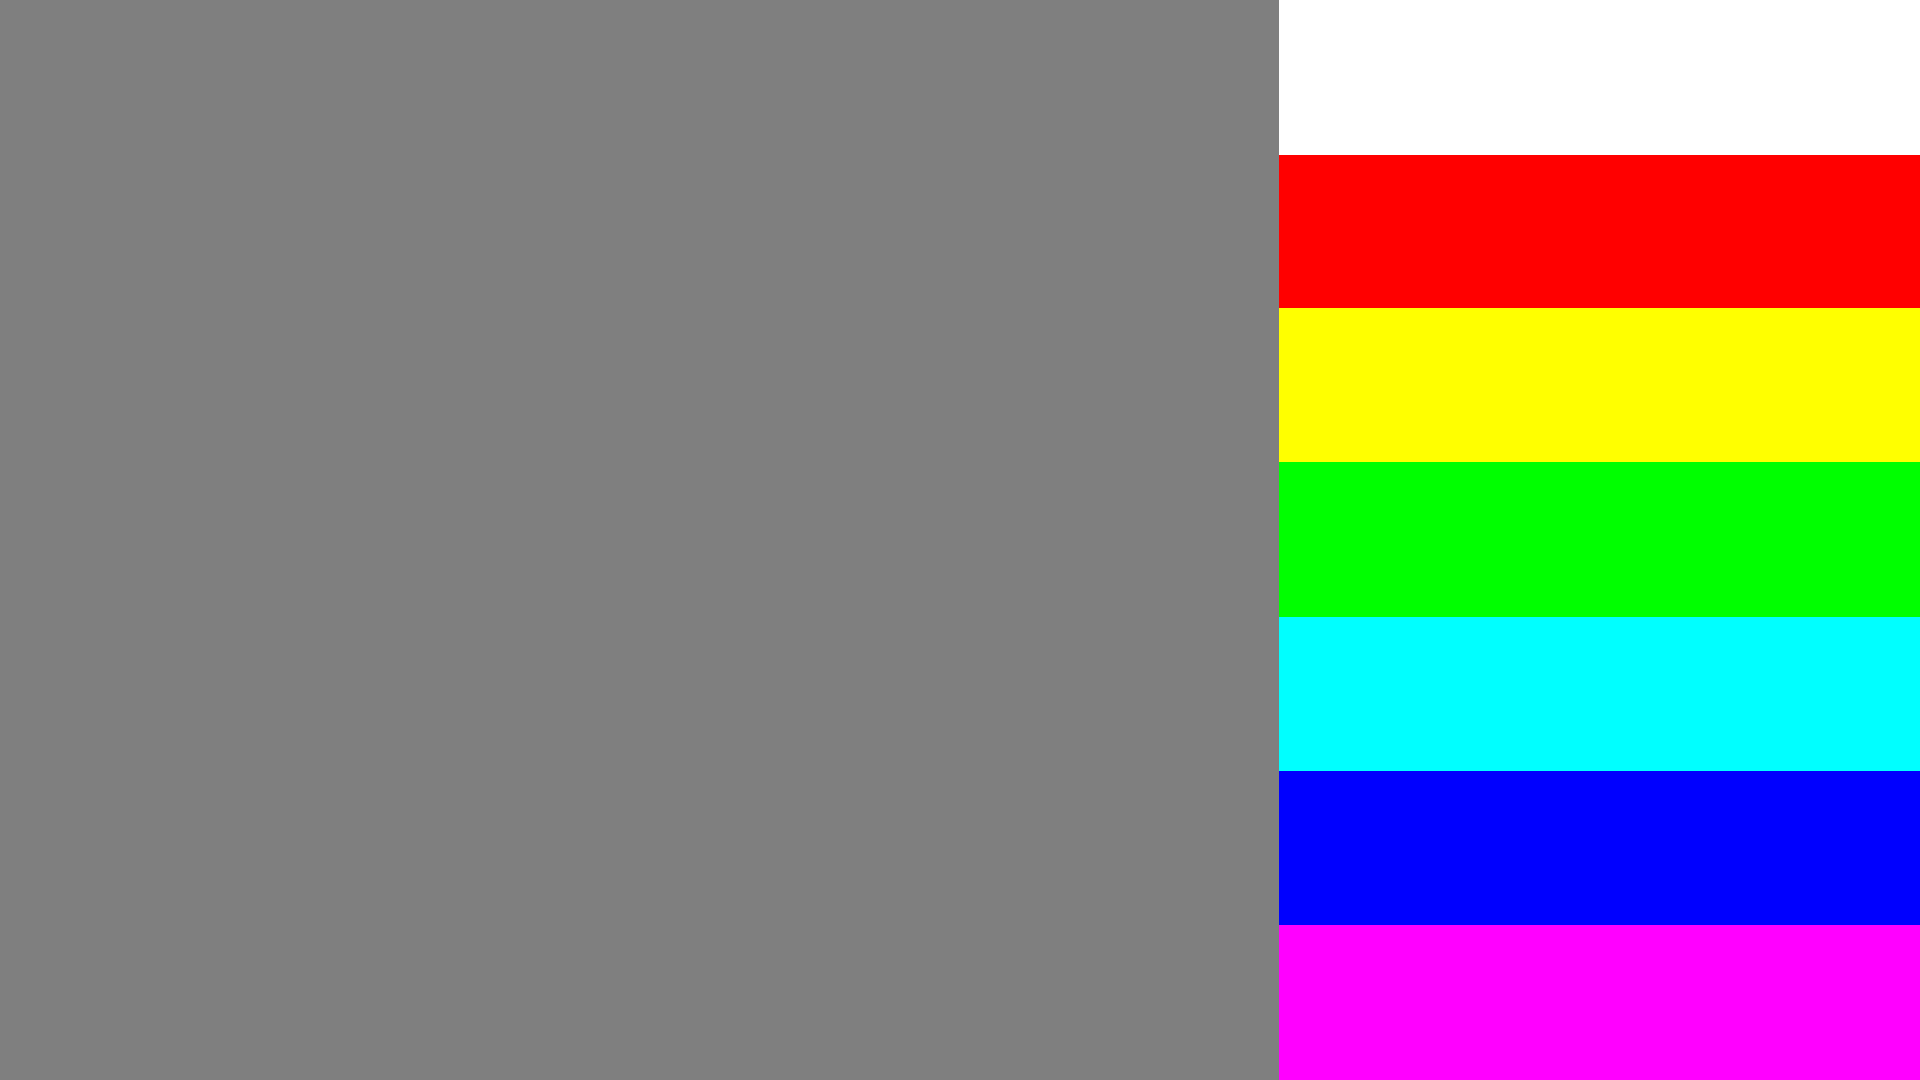 Right side color bleed test pattern